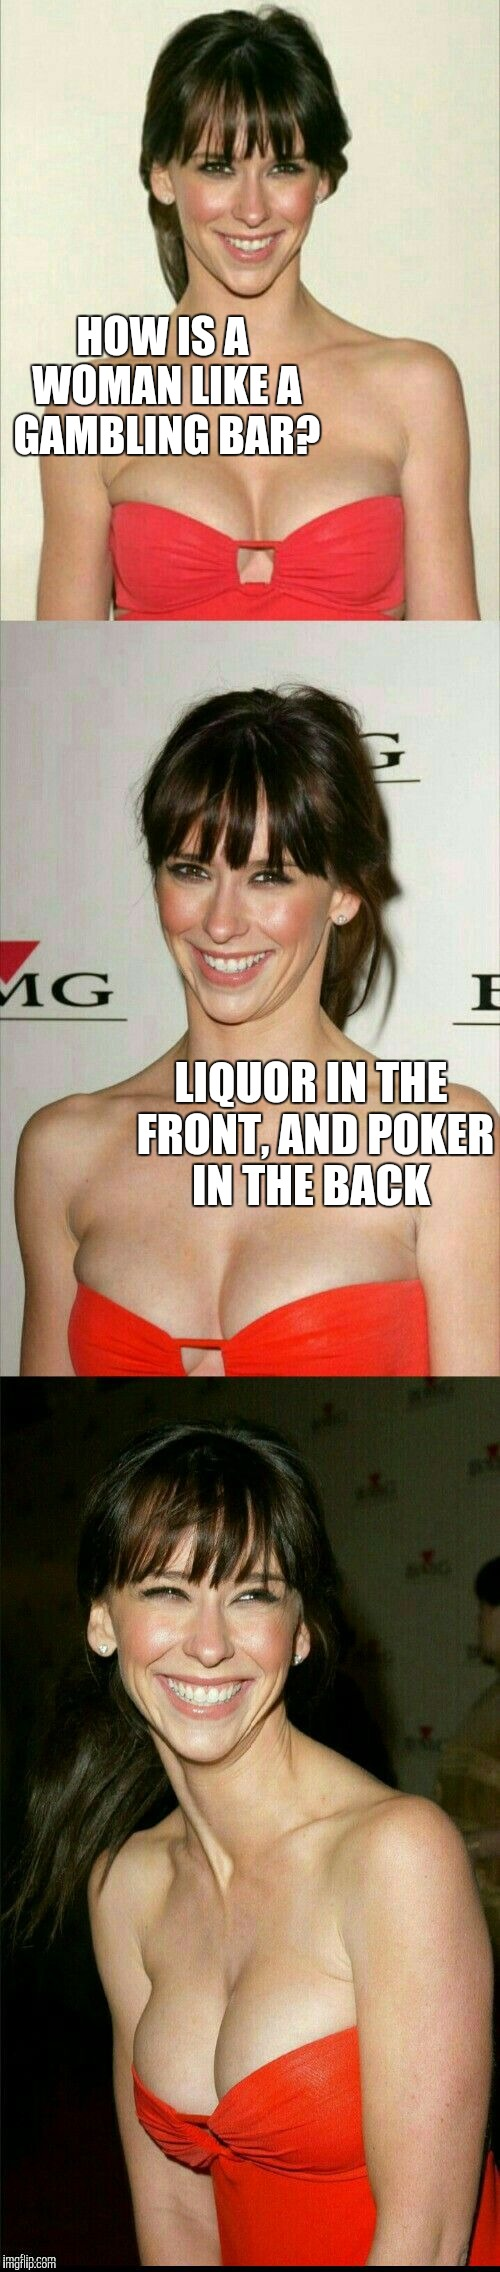 I'd do both in the front and back  | HOW IS A WOMAN LIKE A GAMBLING BAR? LIQUOR IN THE FRONT, AND POKER IN THE BACK | image tagged in jennifer love hewitt joke template,jennifer love hewitt,jbmemegeek,bad puns,liquor | made w/ Imgflip meme maker